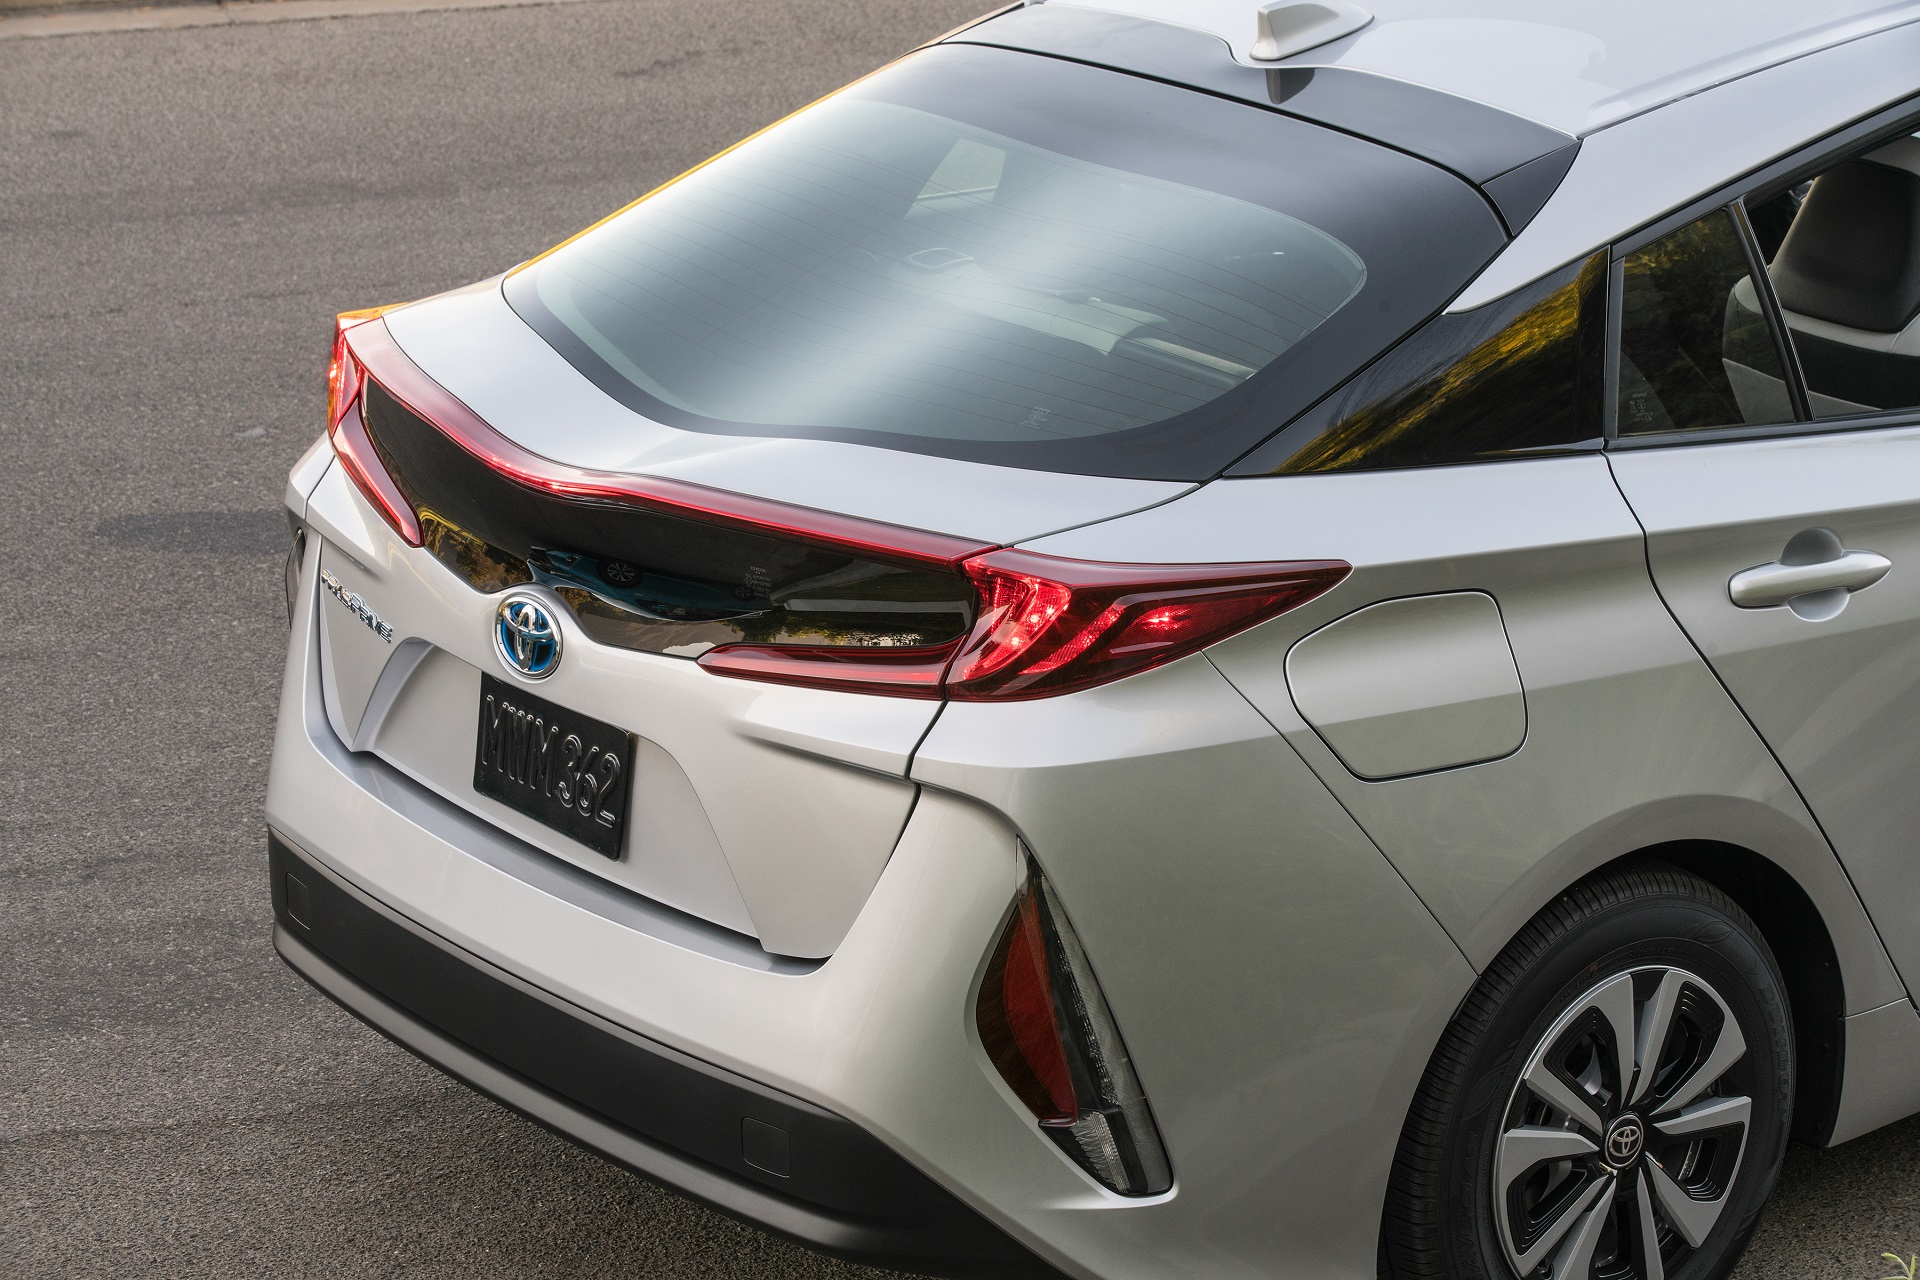 New Prius 2020 Toyota battery R&D will allow all electric car in 'a few years